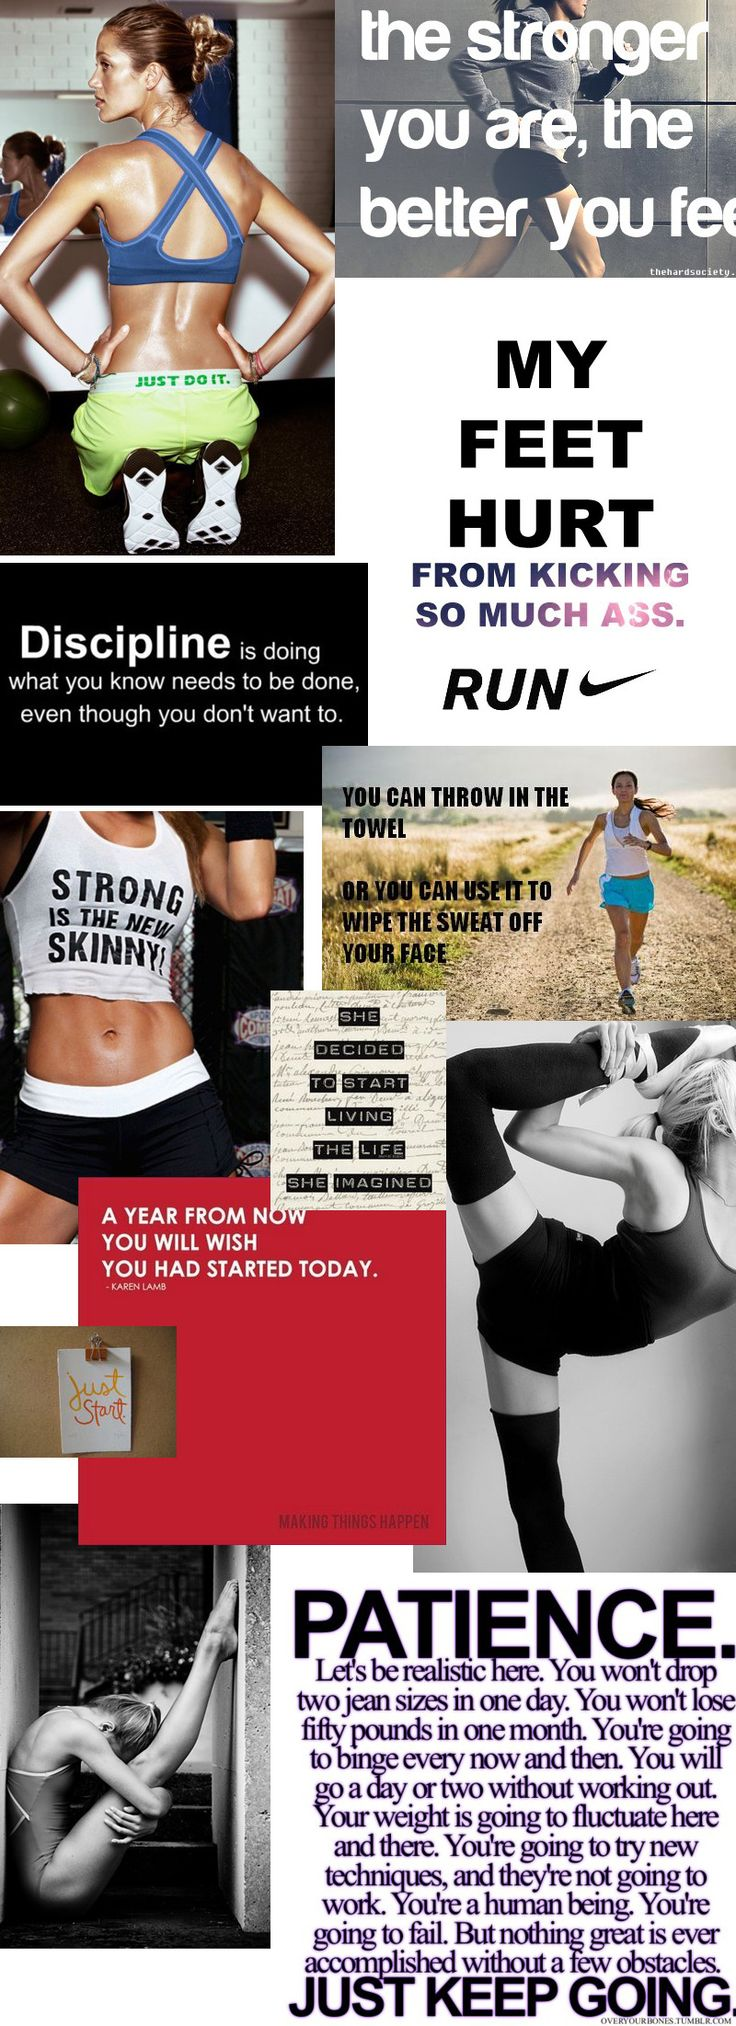 .Fit Workout, Inspiration, Motivation Boards, Quotes, Workout Exercies, Physical Exercies, Get Motivation, Work Out, Health